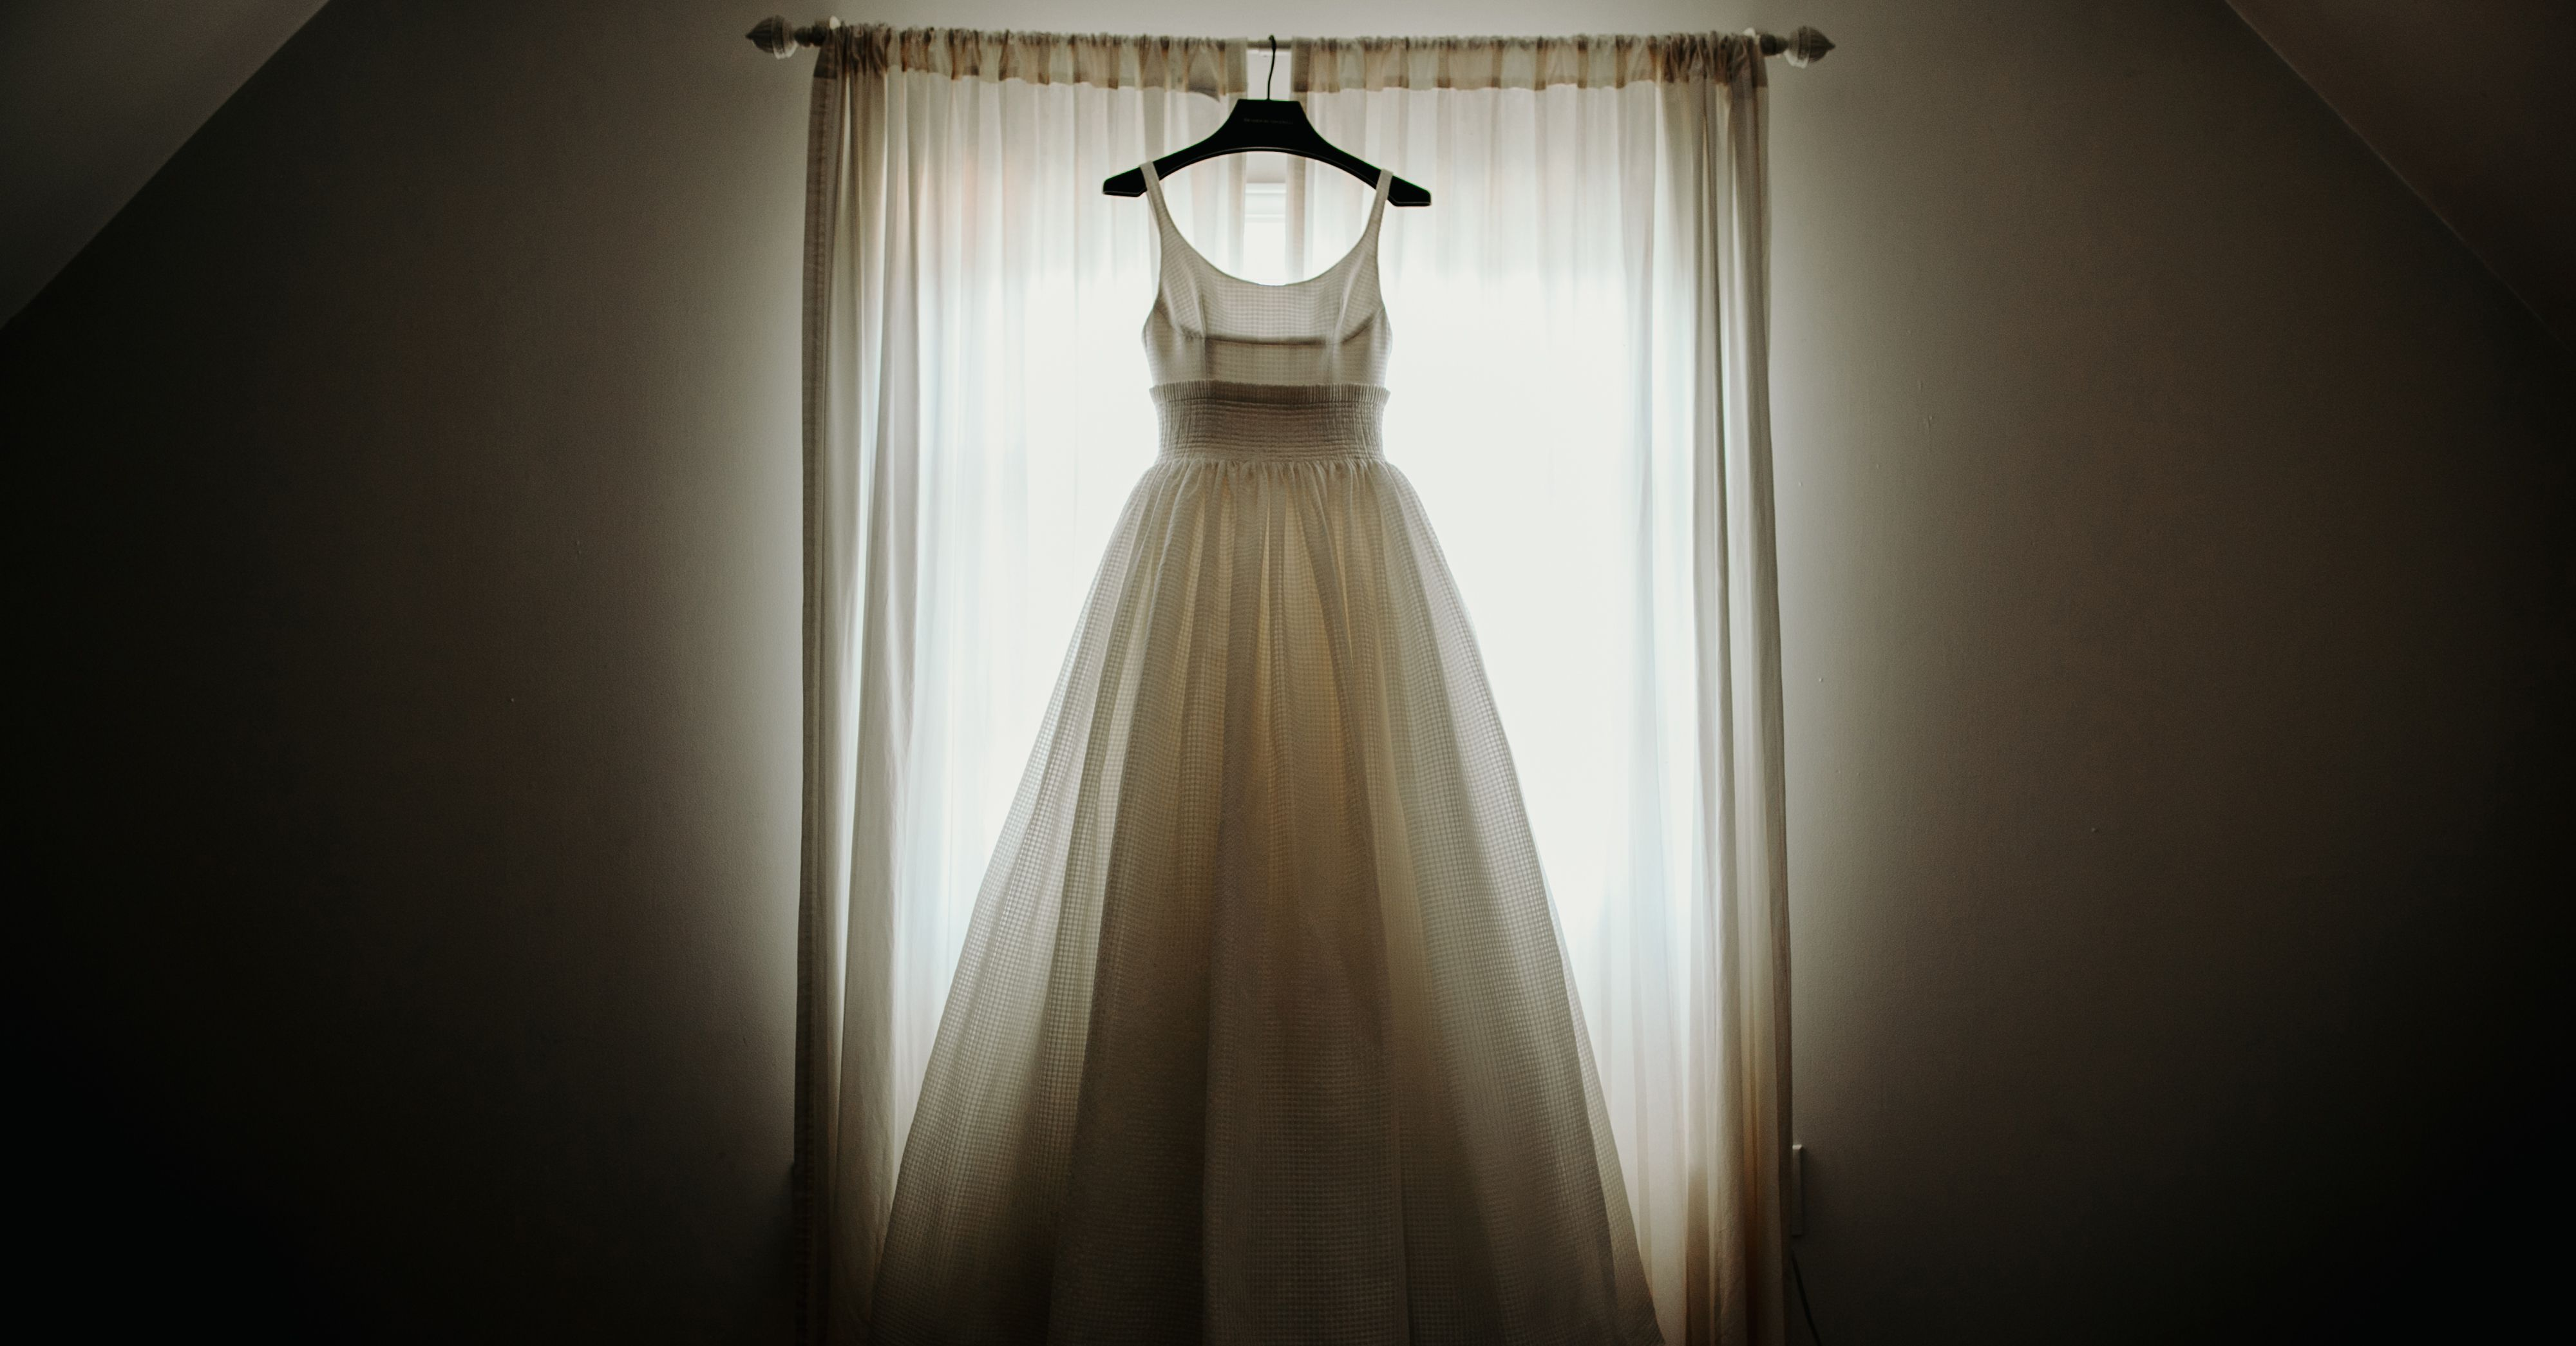 Where And How To Sell Or Donate Your Wedding Dress